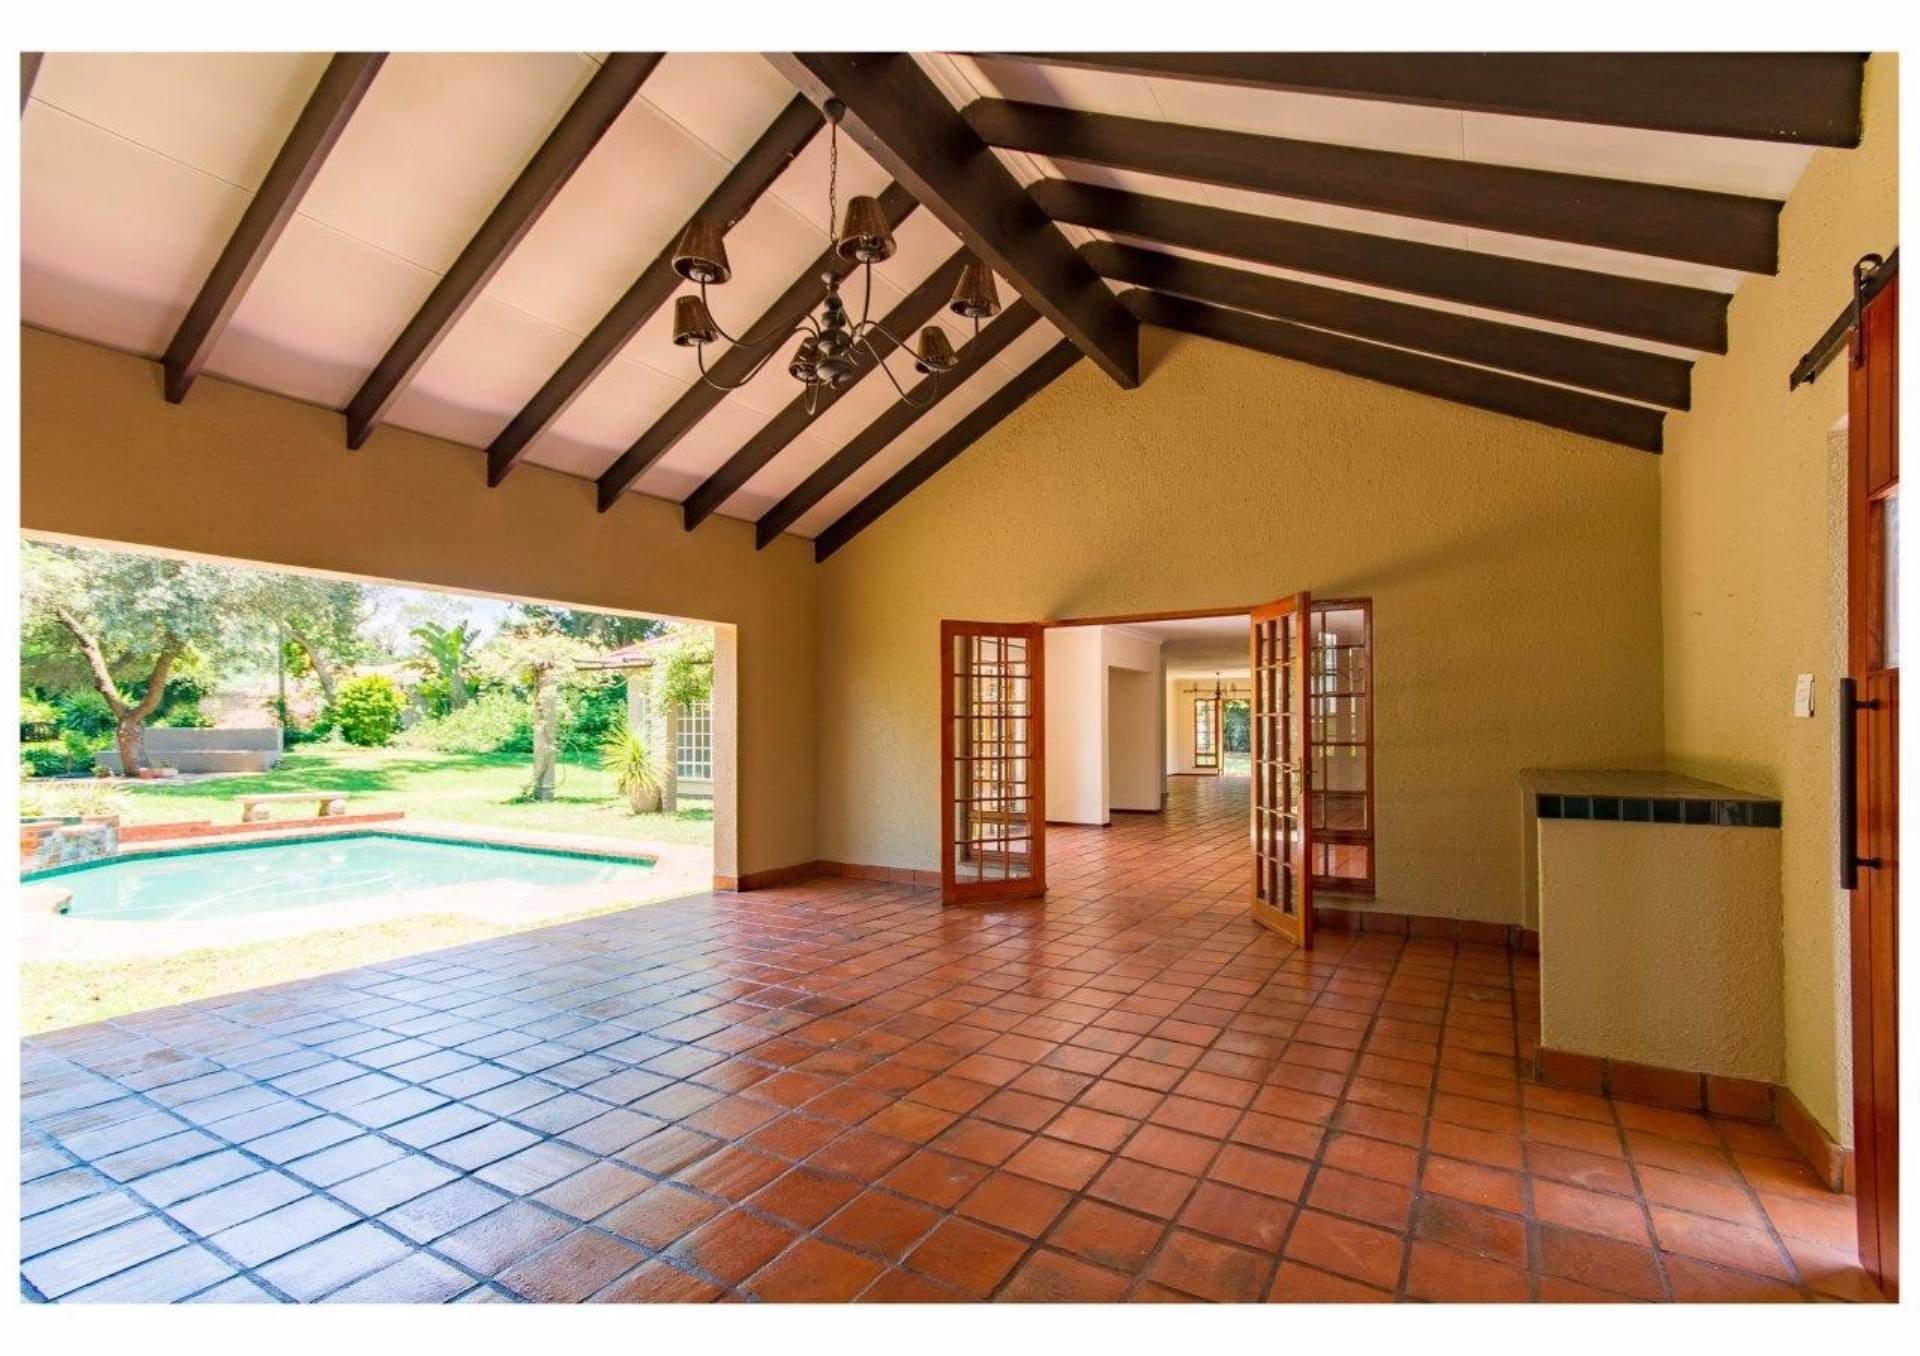 4 BedroomHouse For Sale In Douglasdale